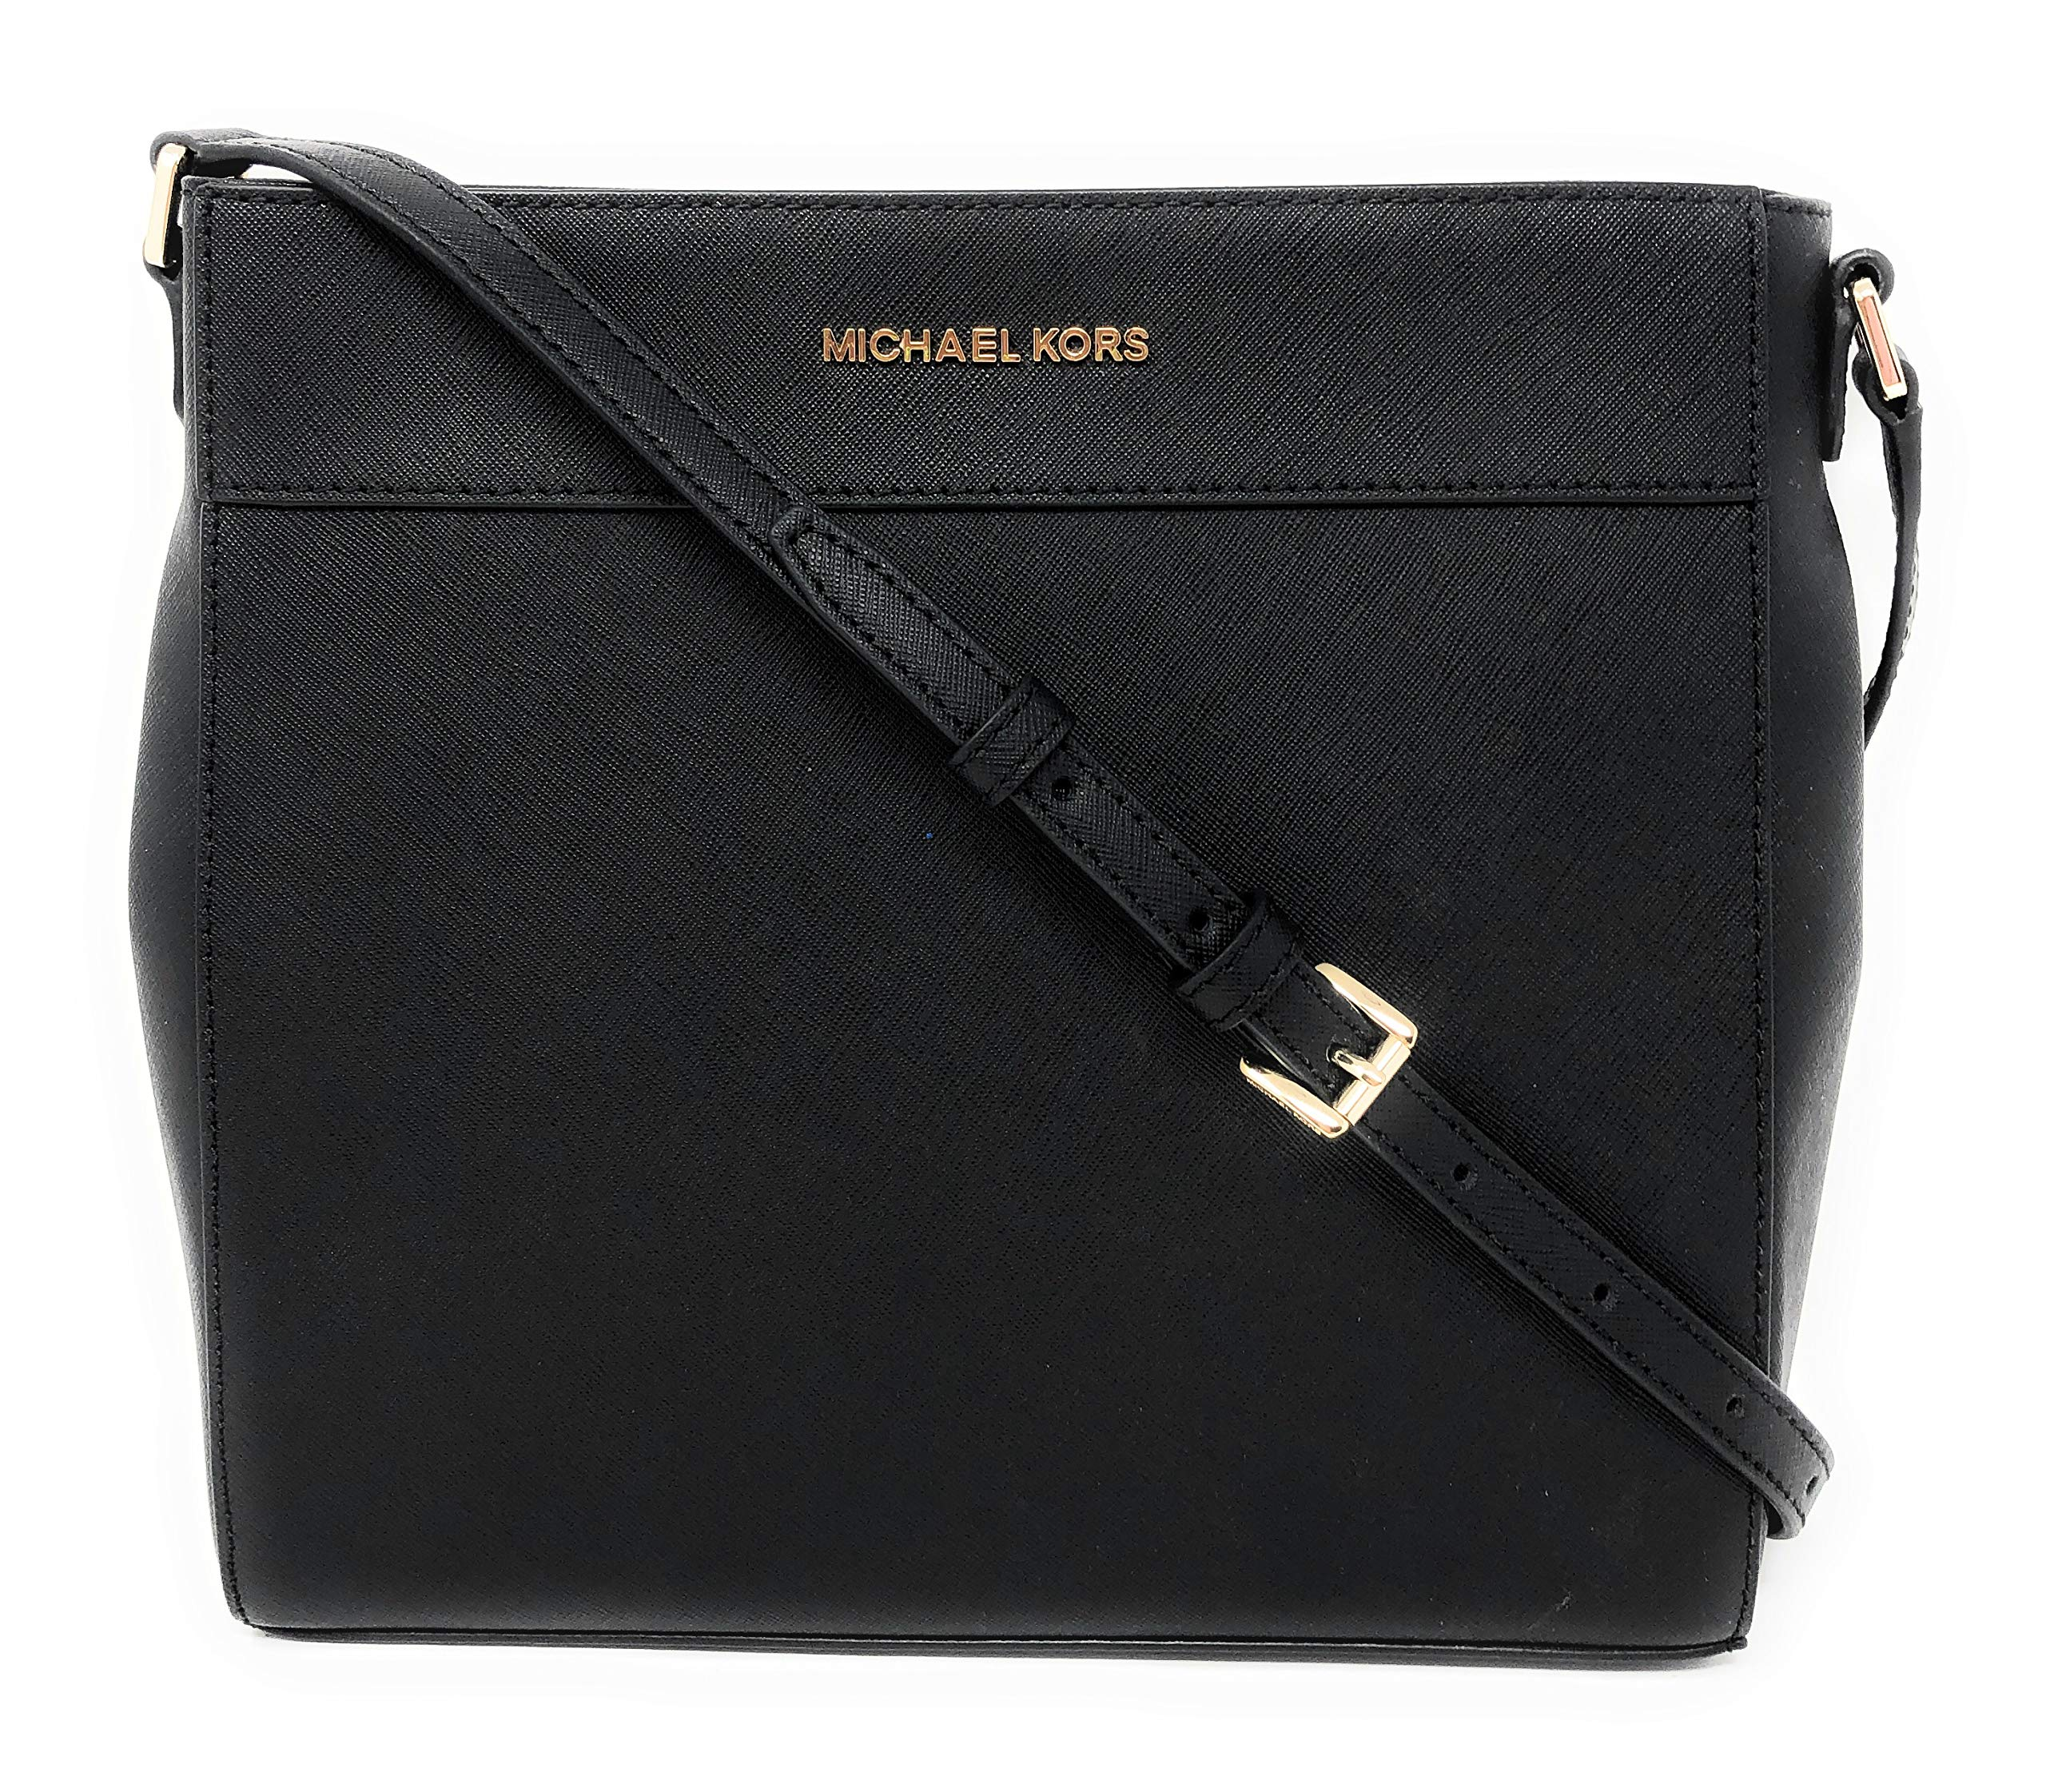 Michael Kors Women's Jet Set Travel Messenger Crossbody Bag No Size (Black)